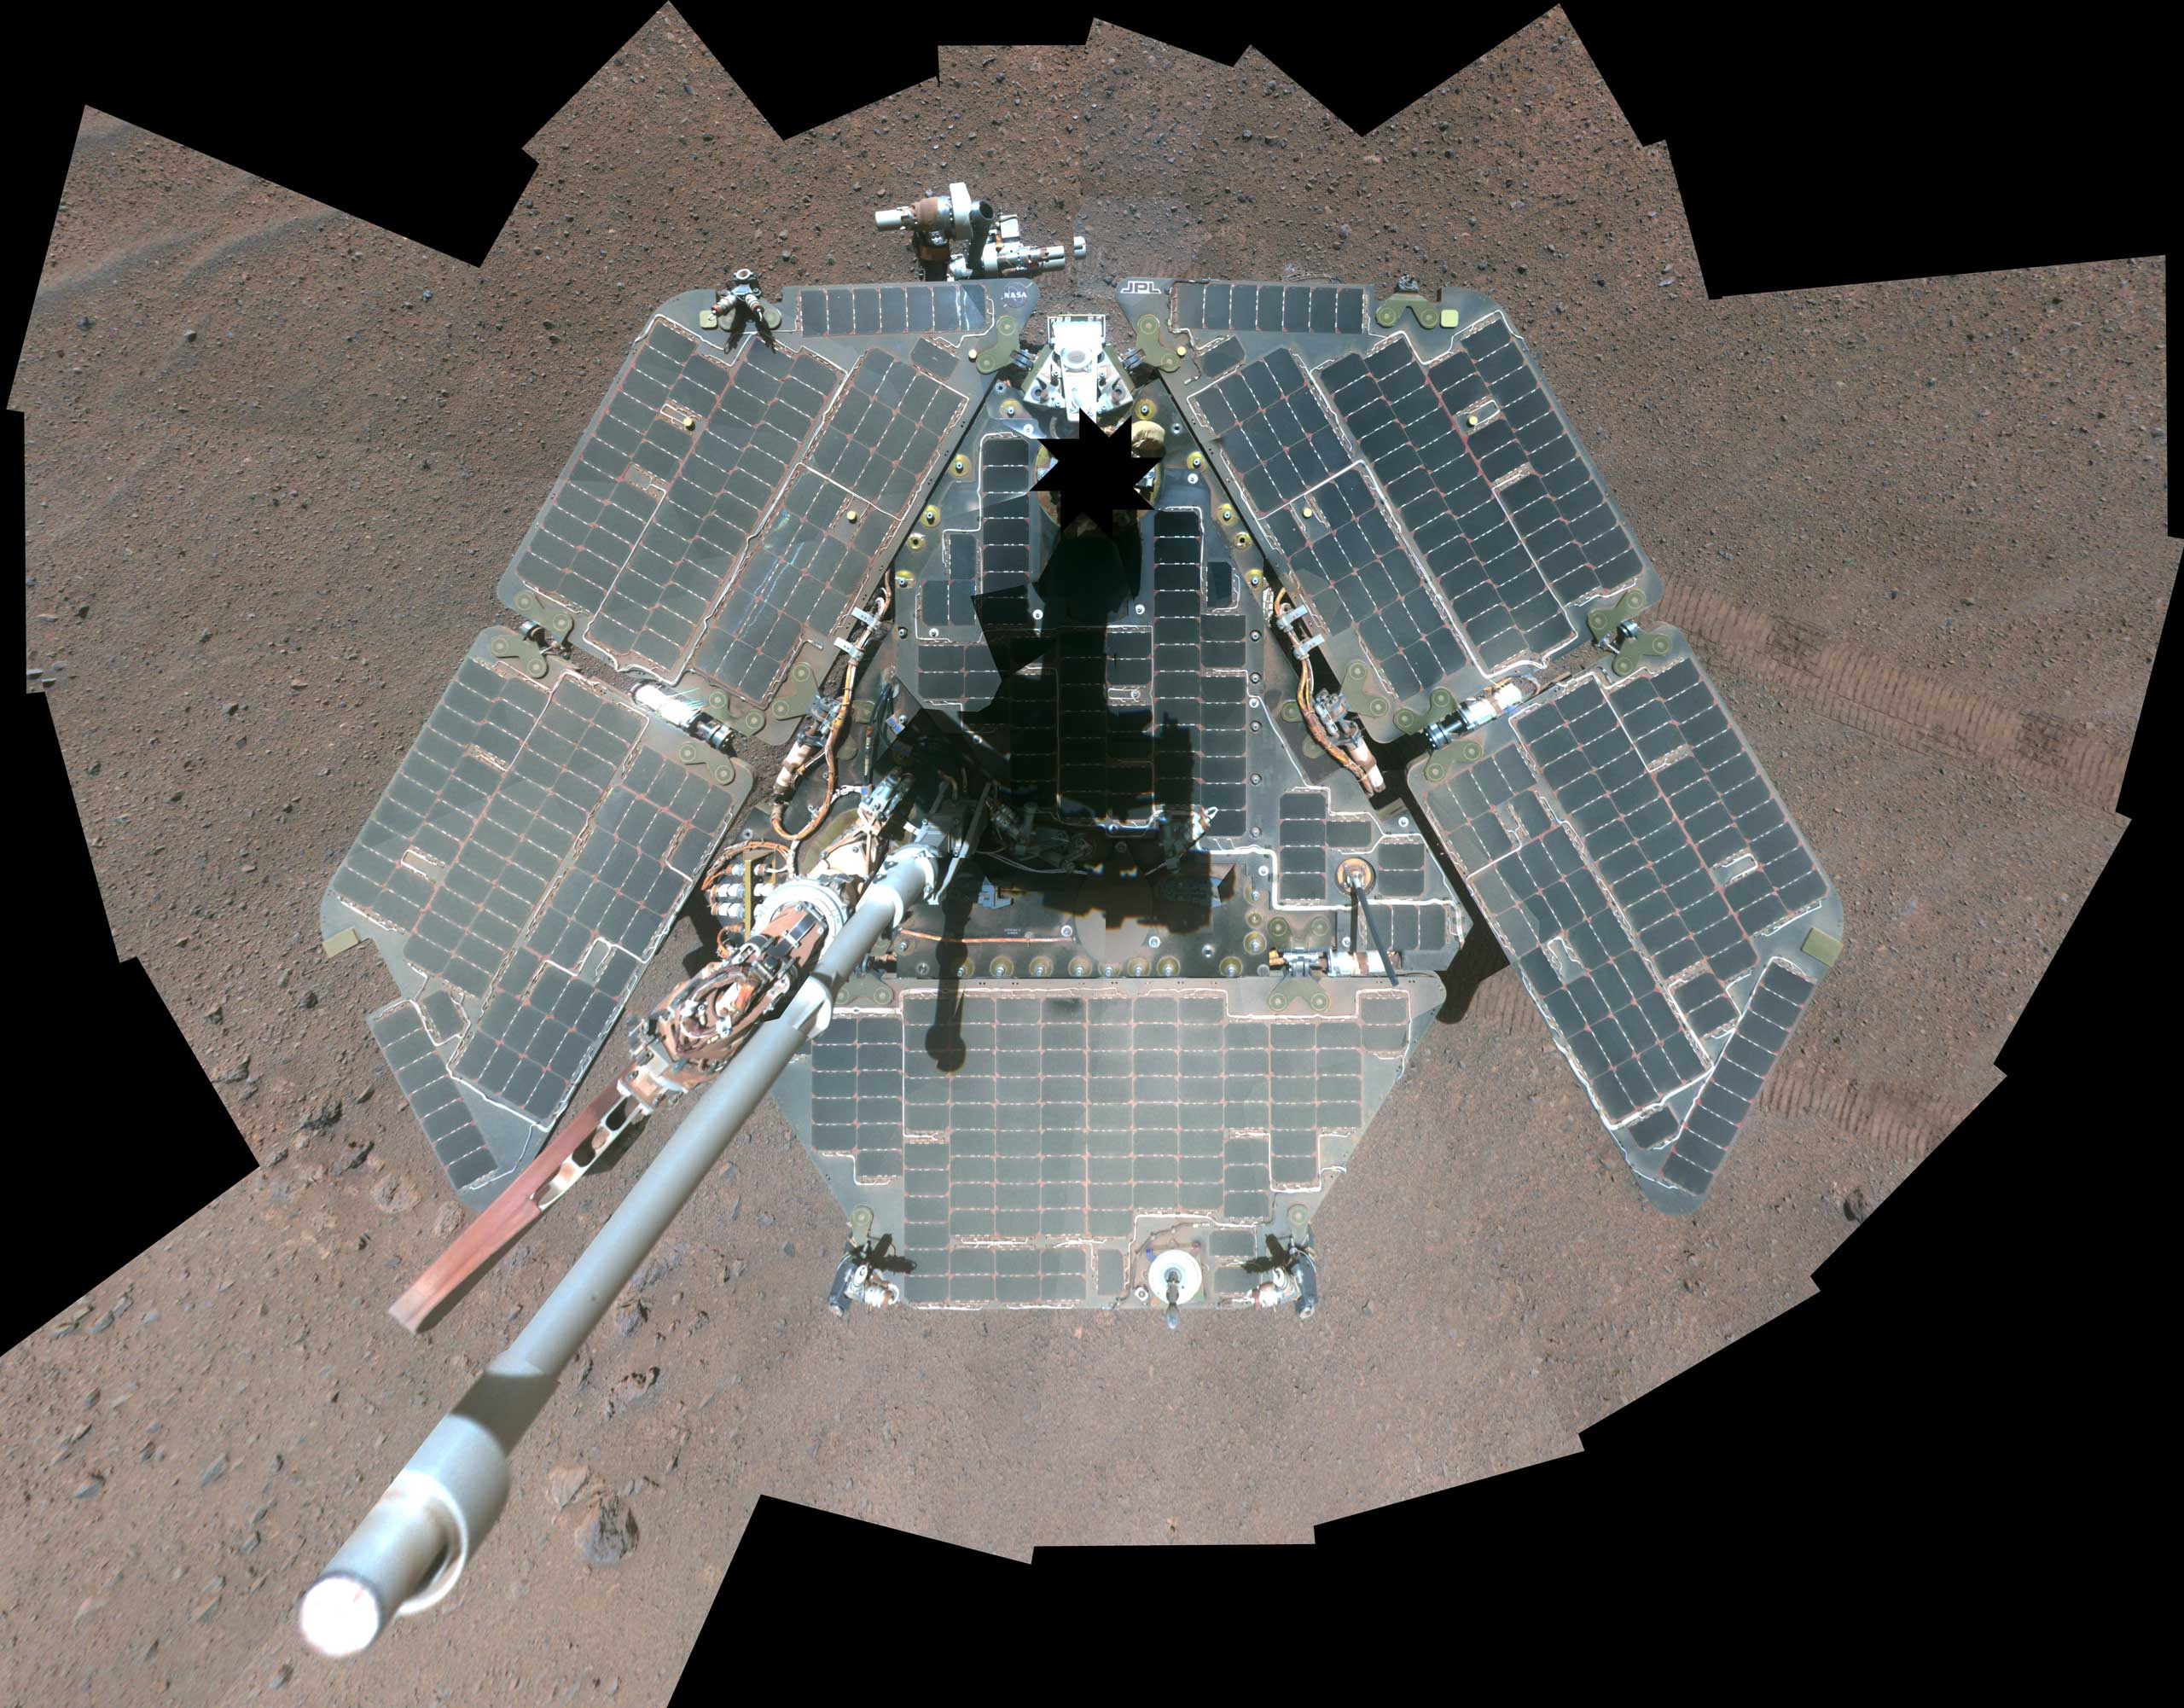 The Opportunity Rover on Mars takes a selfie shortly after dust cleared its solar panels in March 2014.